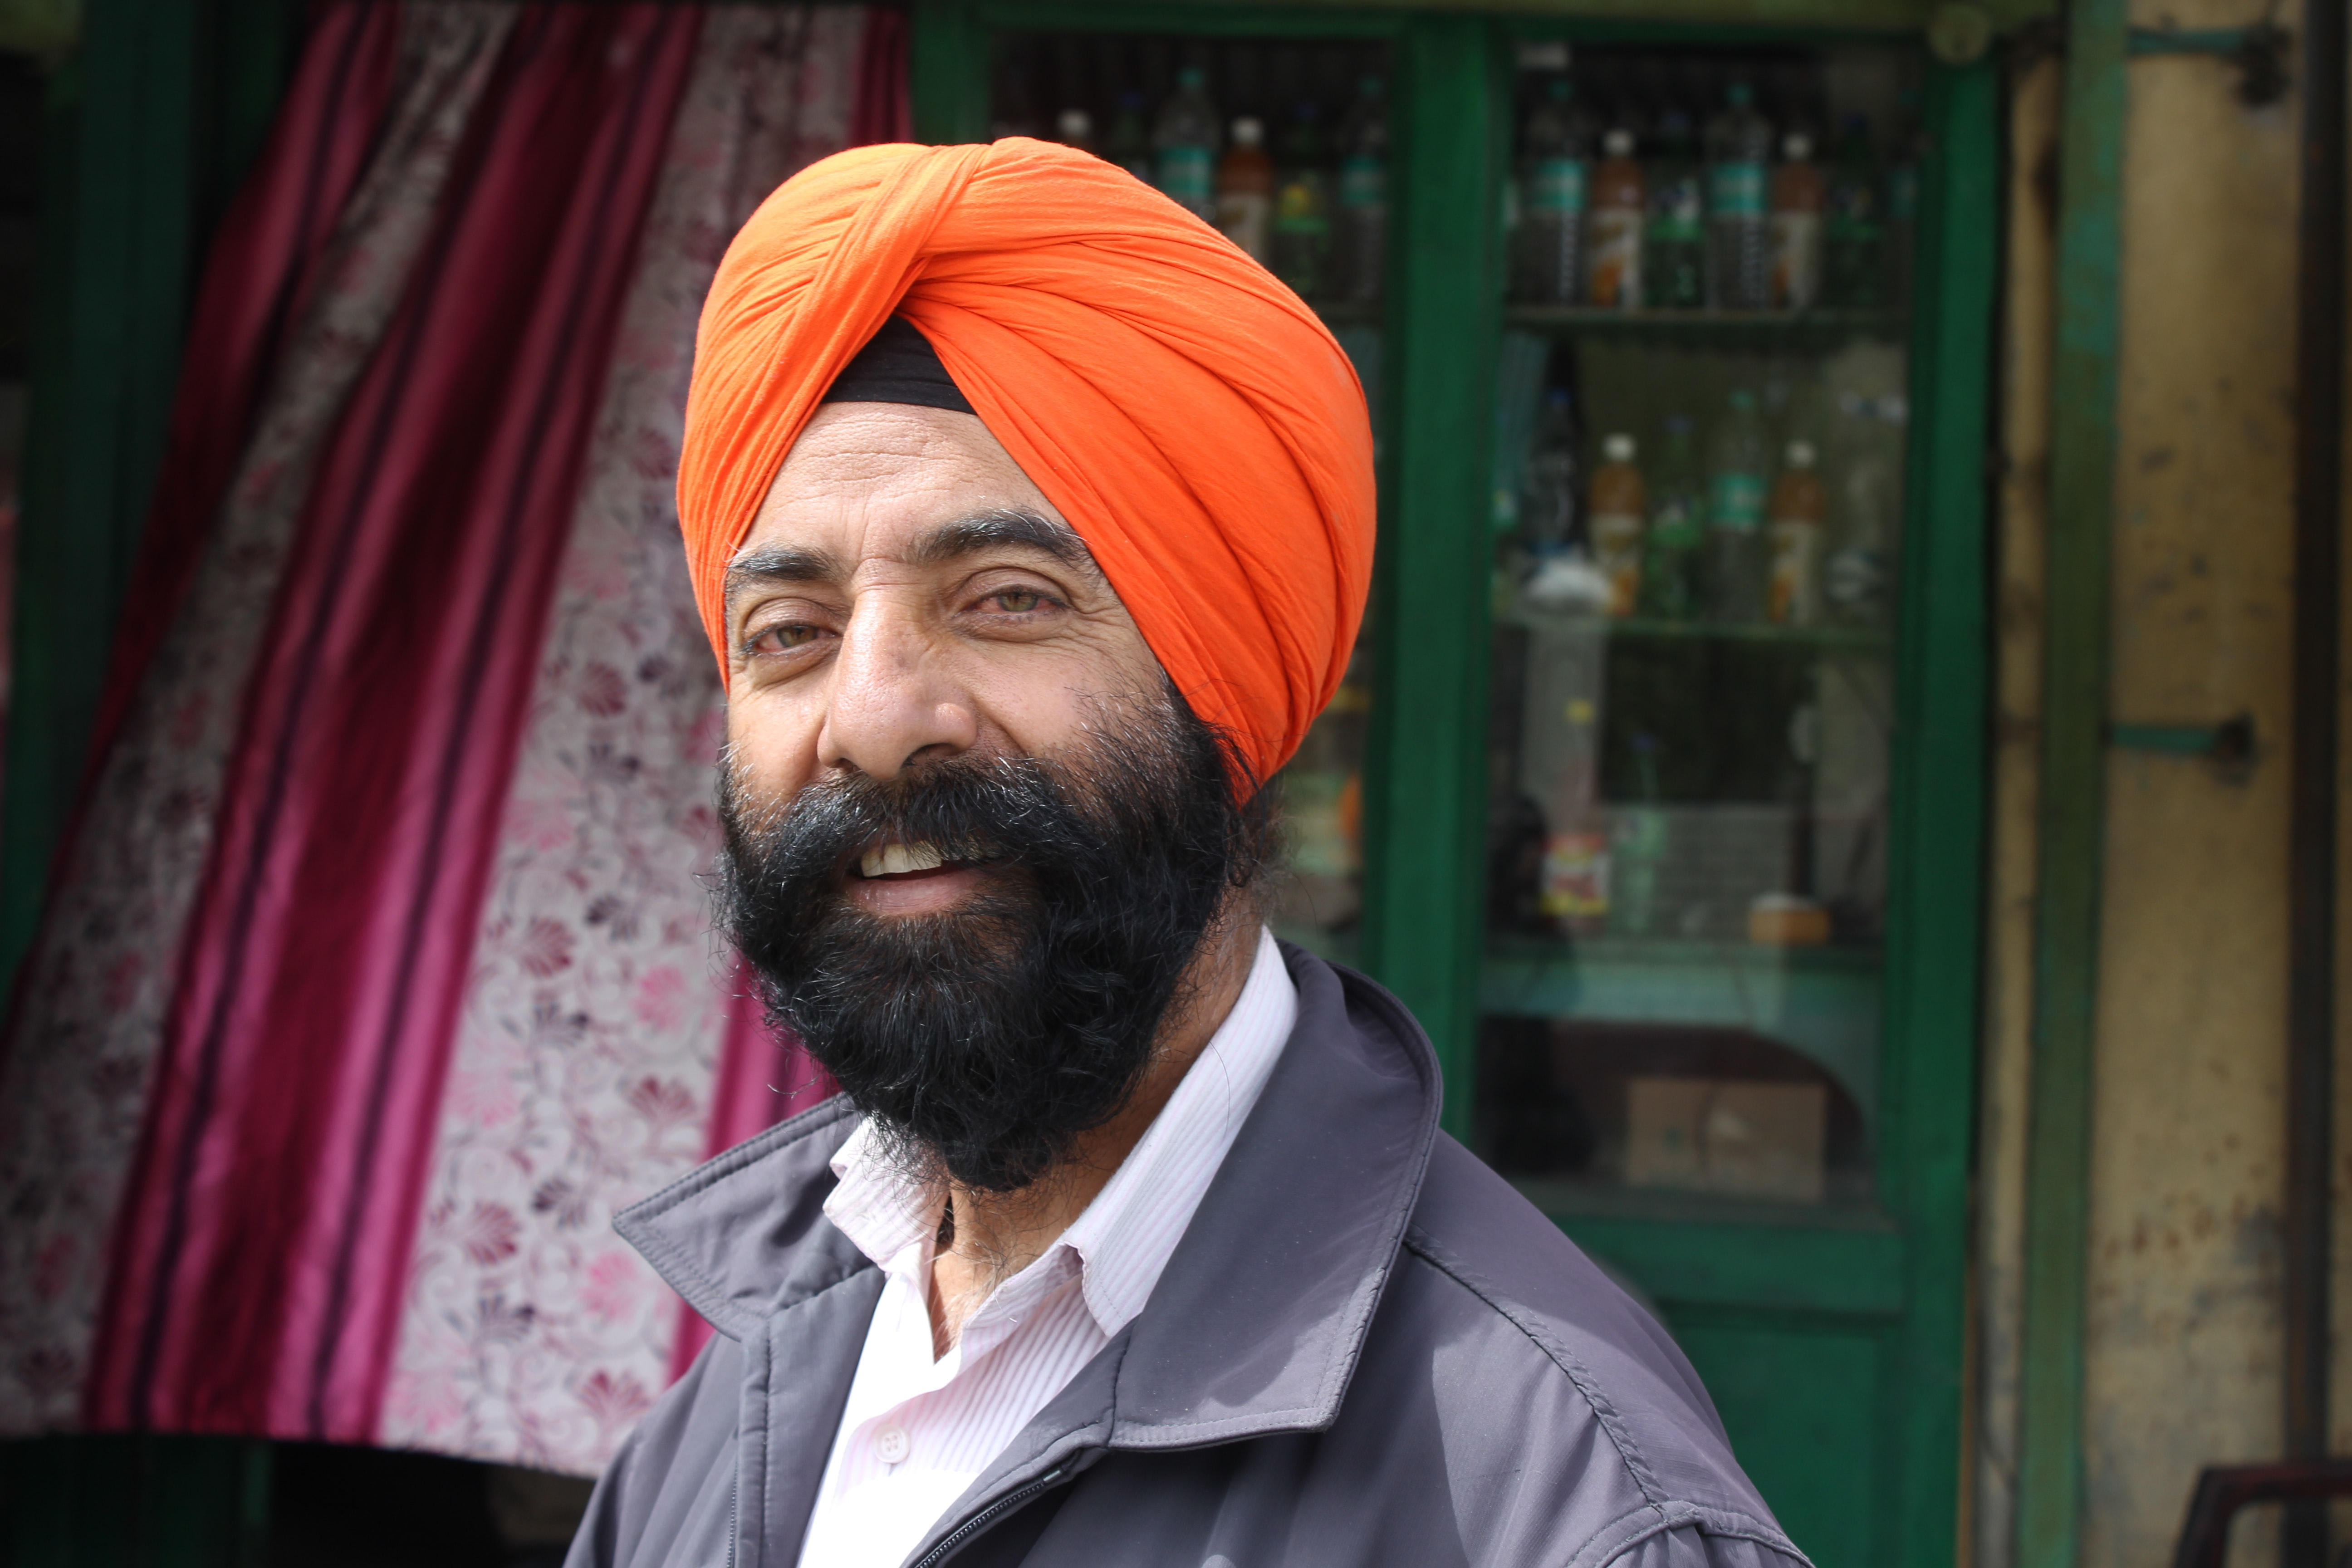 man wearing orange turban